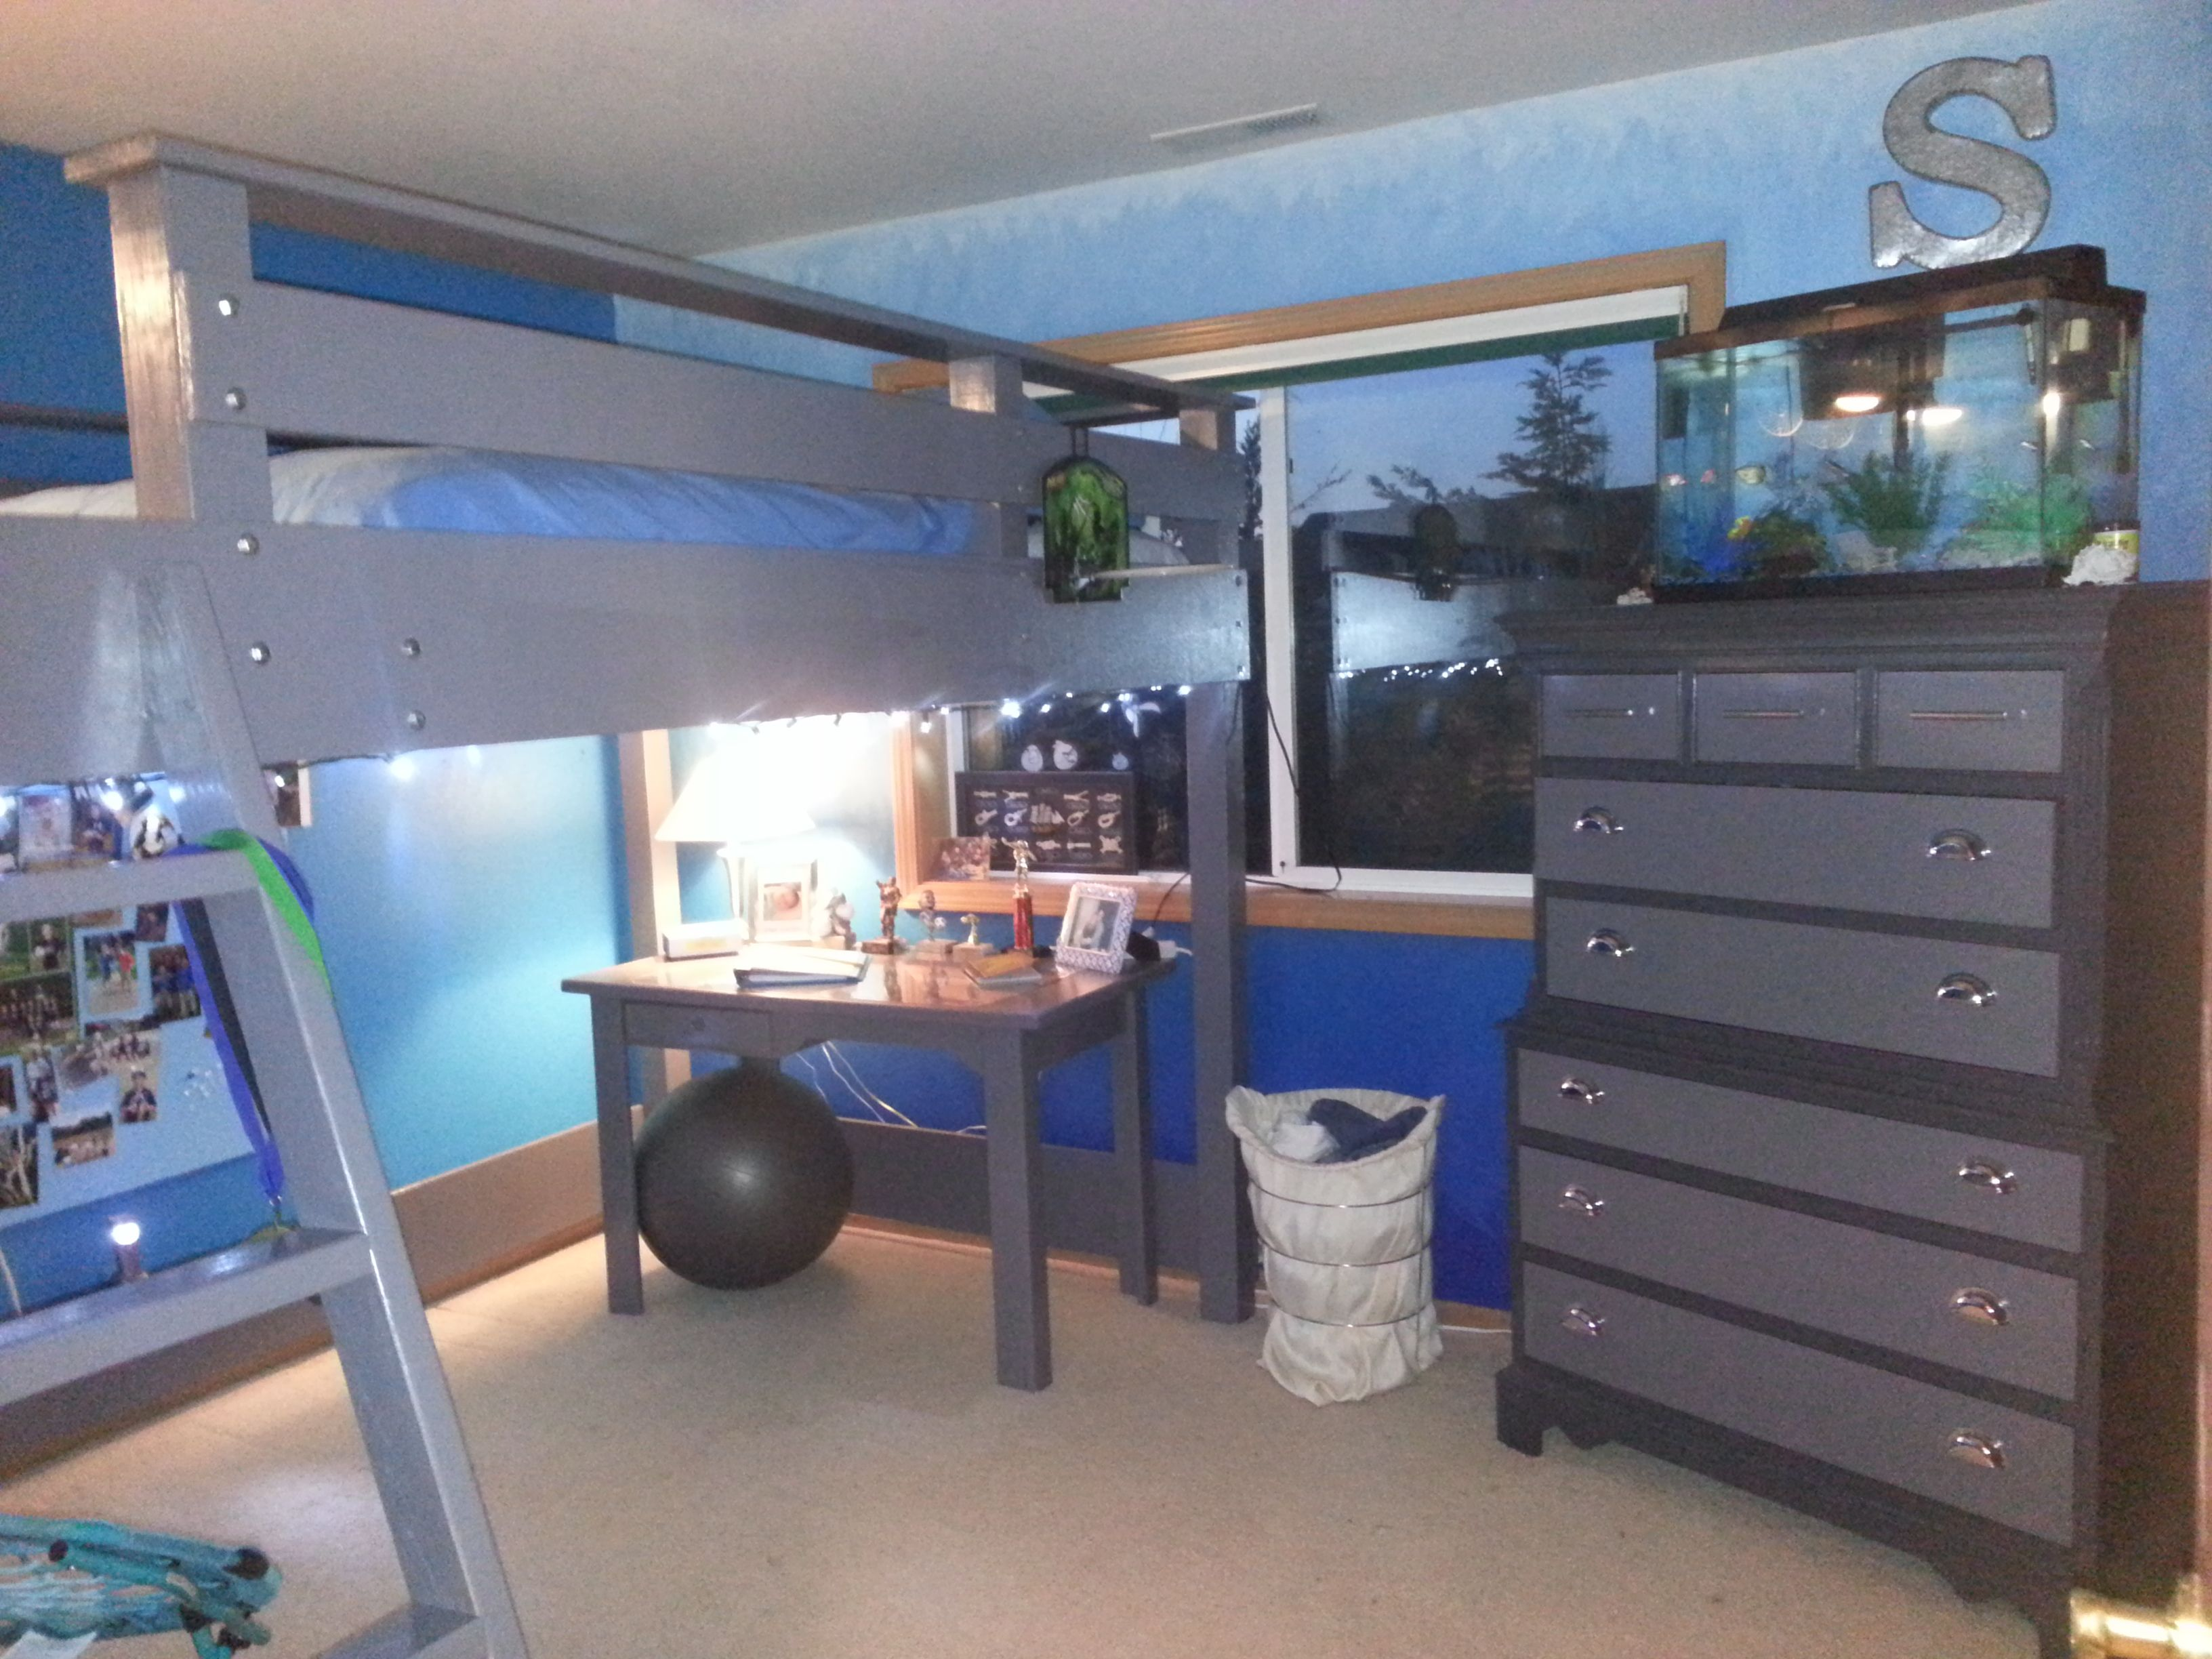 Giant Loft Bed Boys Bedroom hangout Gray and Blue hombre ocean blue walls  milk paint two tone dresser. Giant Loft Bed 10 x5  Boys Bedroom hangout Gray and Blue hombre